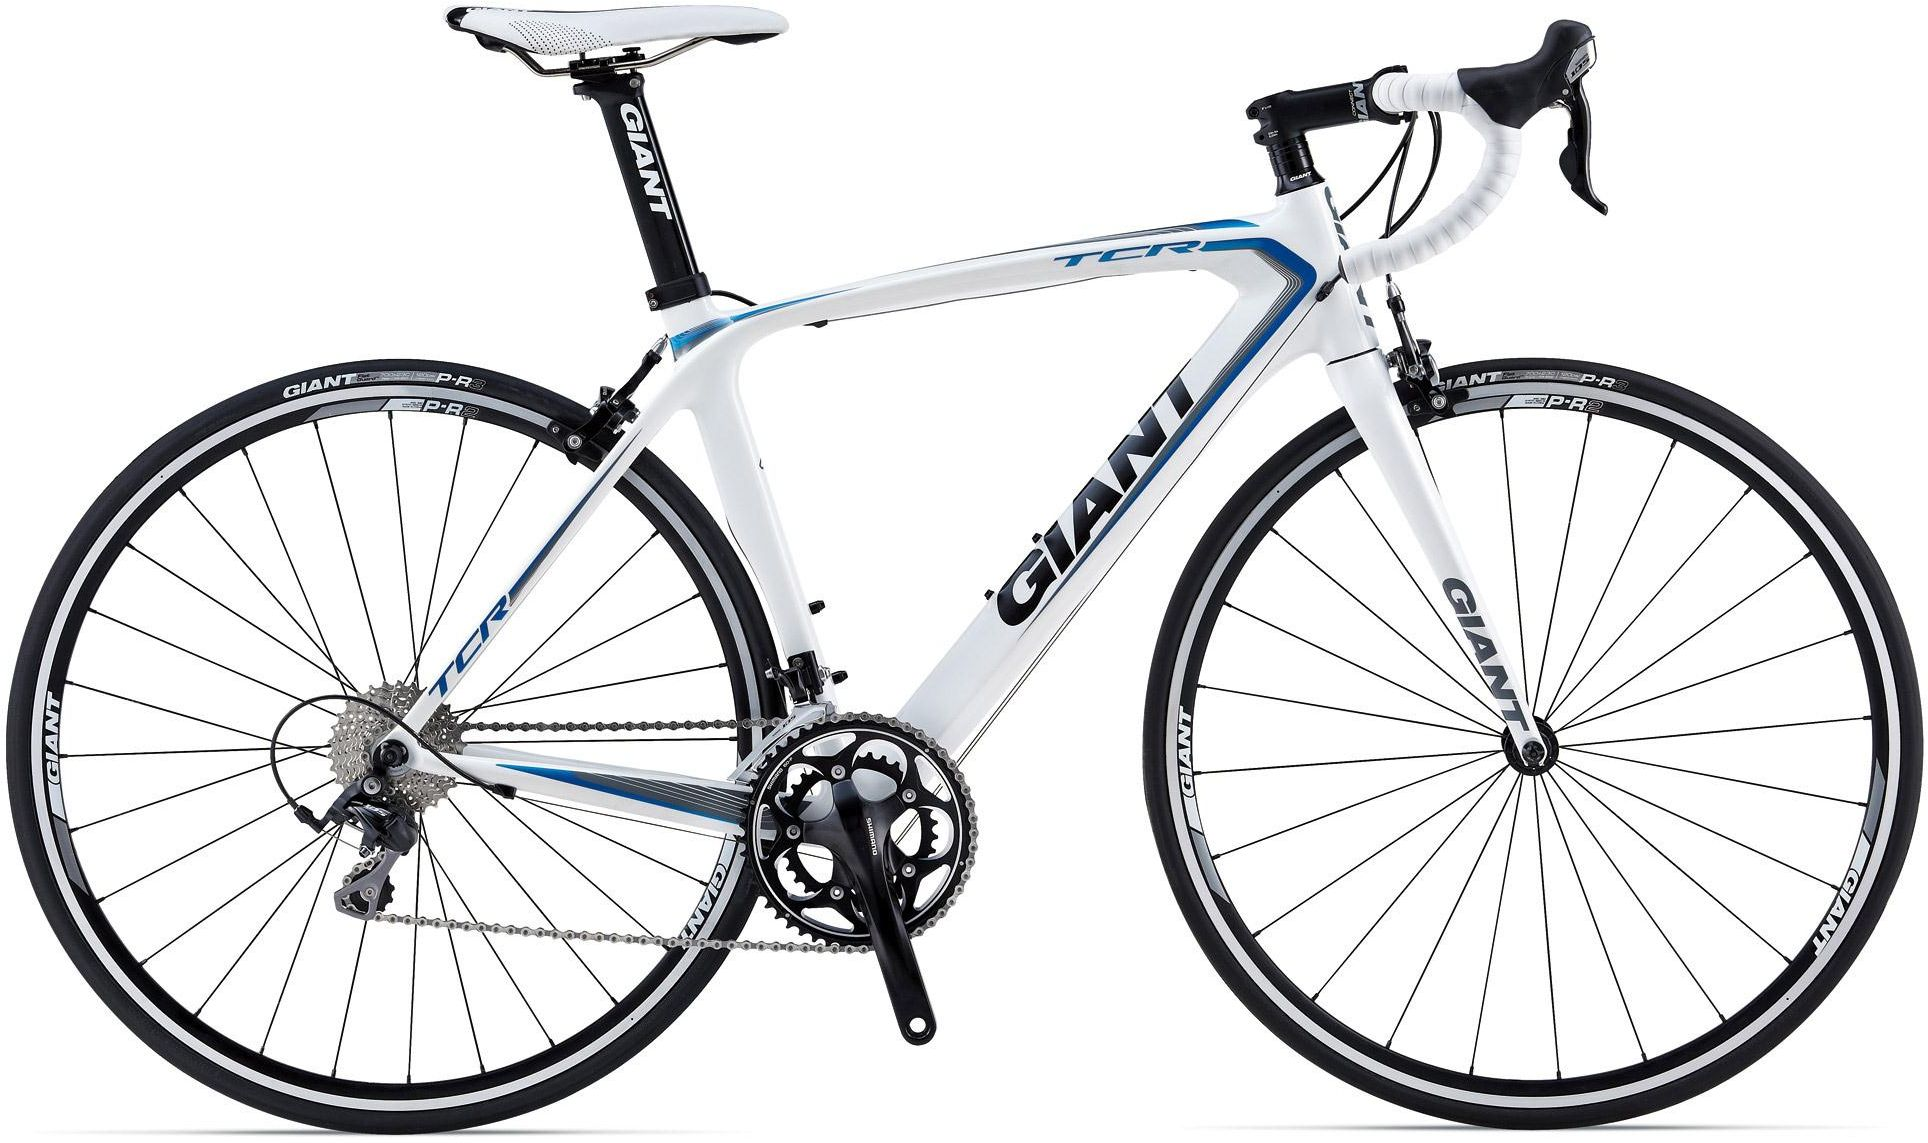 Giant TCR Composite 2 2014 review - The Bike List